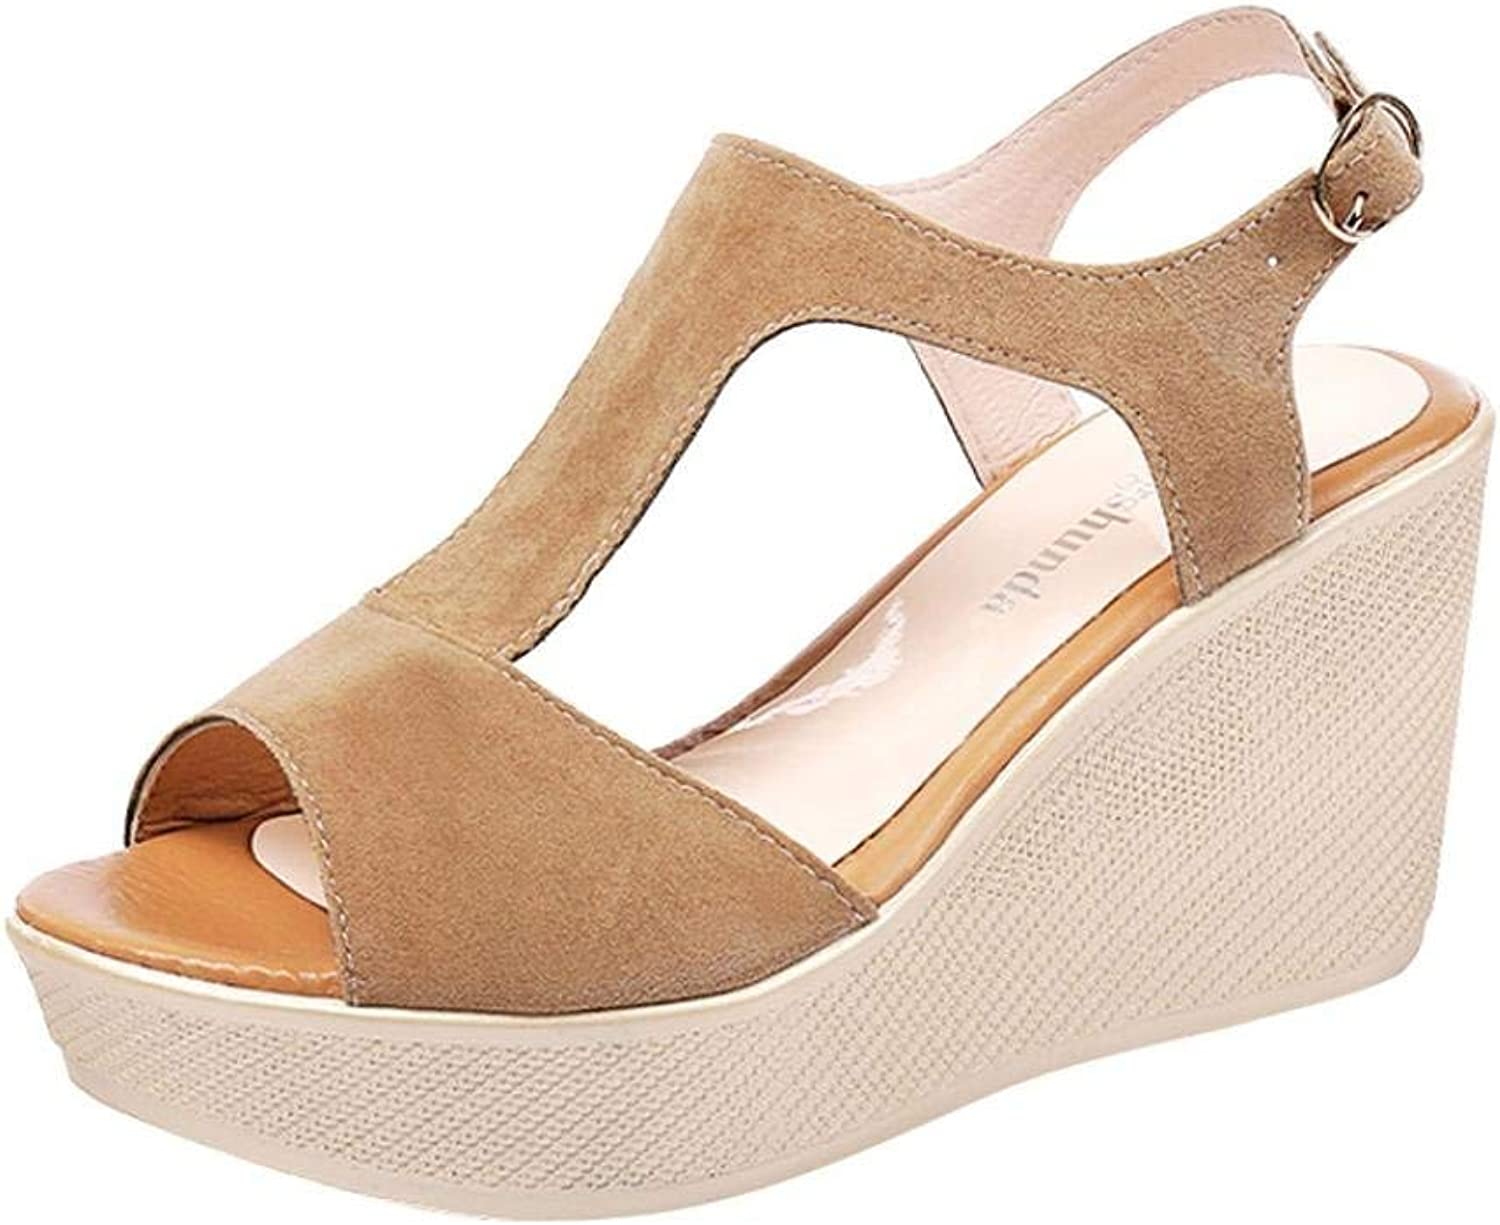 Lady Sandals Mode Kvinnor Sandaler sommar Boom skor skor skor Girlish Dinner Party Casual elegant Buckle Solid Färg Wild Hipster Middle Heel Sandaler  officiellt godkännande